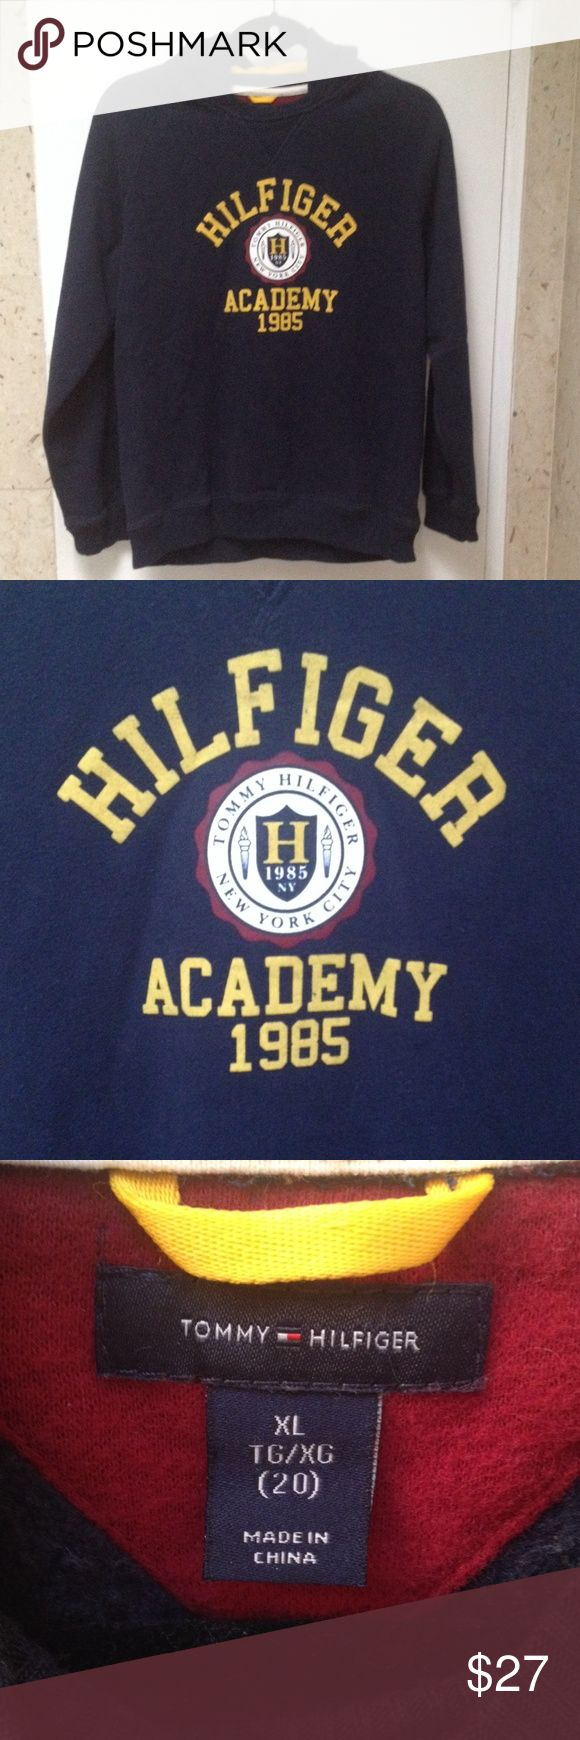 Tommy Hilfiger navy hoodie sweatshirt XL (20) Tommy Hilfiger navy hoodie sweatshirt XL (20) with Tommy Hilfiger New York City Academy 1985 in the front and 5 in the back Tommy Hilfiger Shirts & Tops Sweatshirts & Hoodies